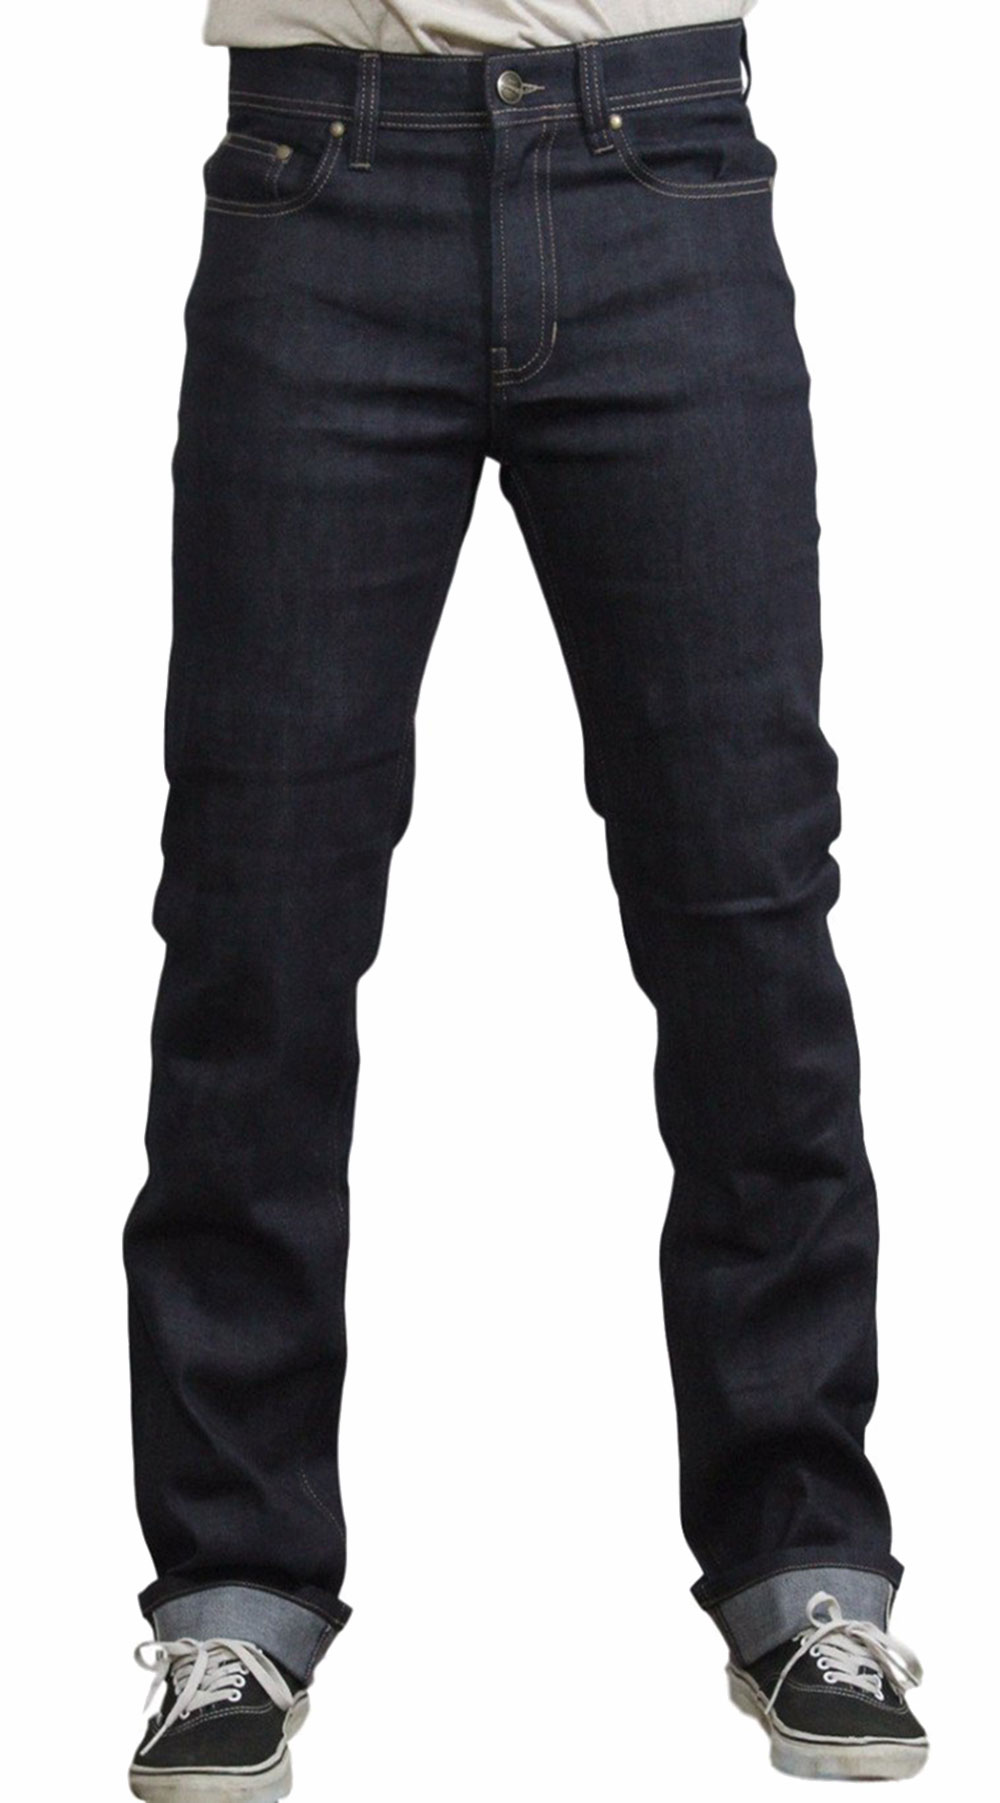 MENS JEANS : SLIM SELVEDGE